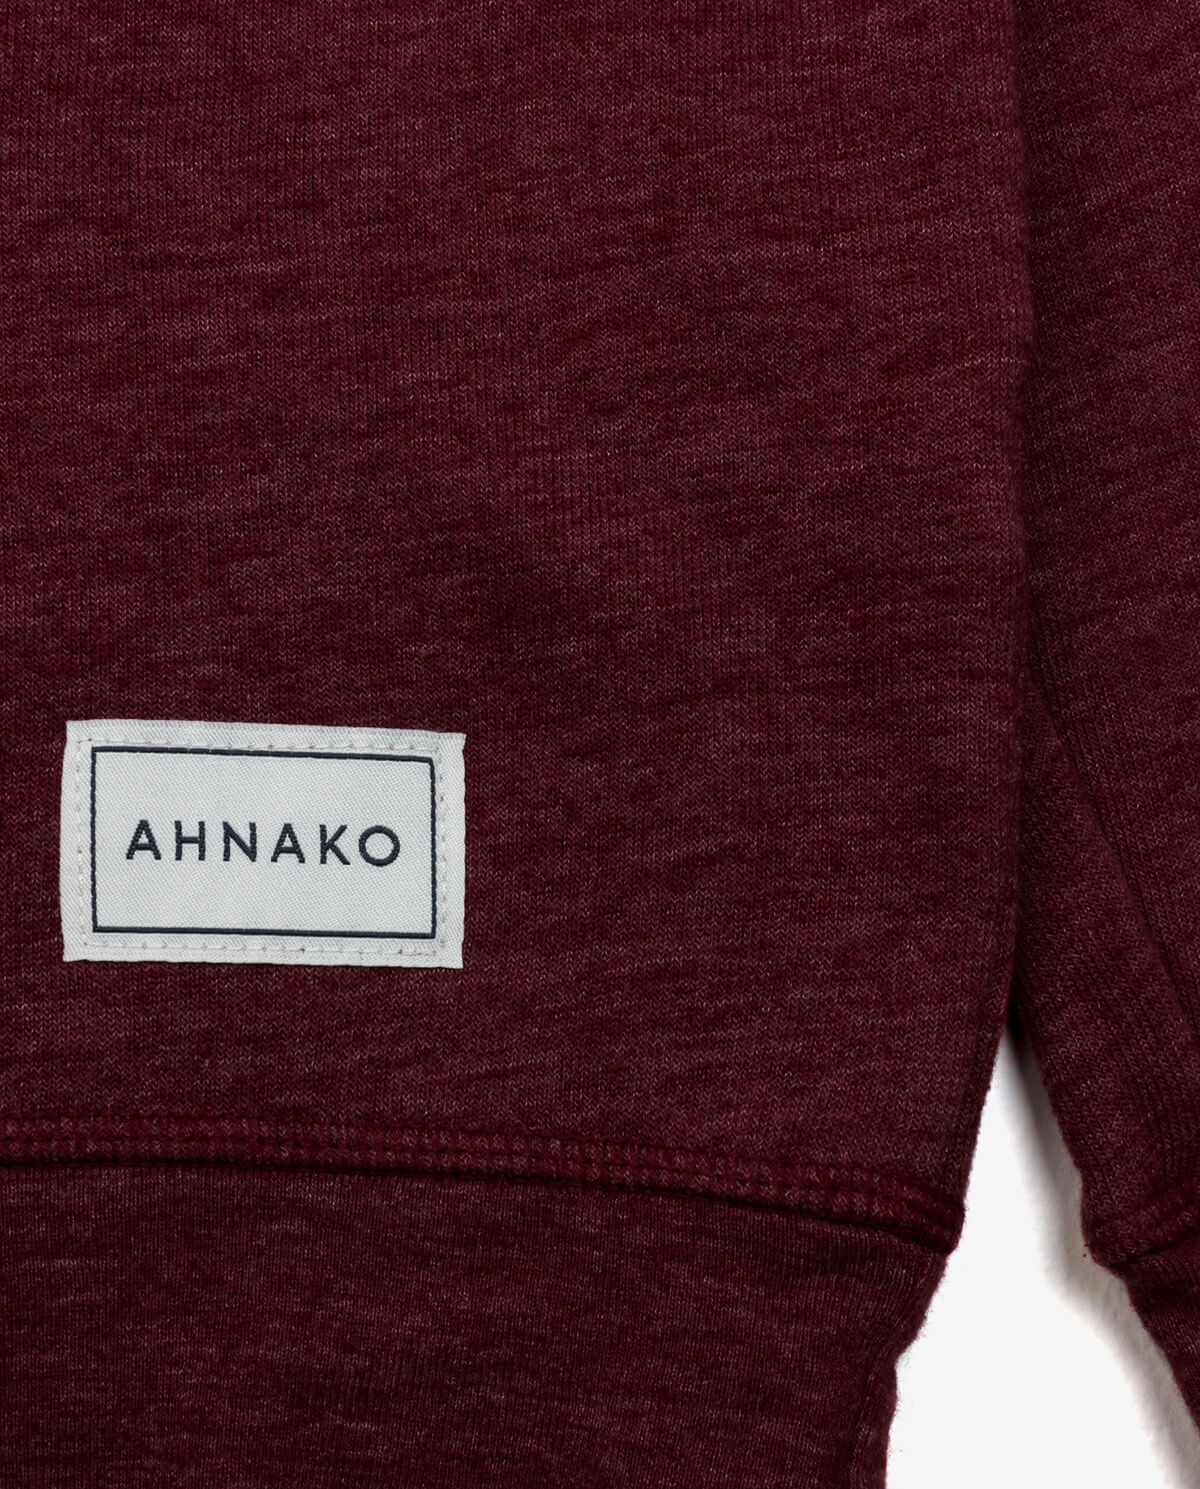 Ahnako Burgunday Sweater with Logo Patch - Patch Close Up